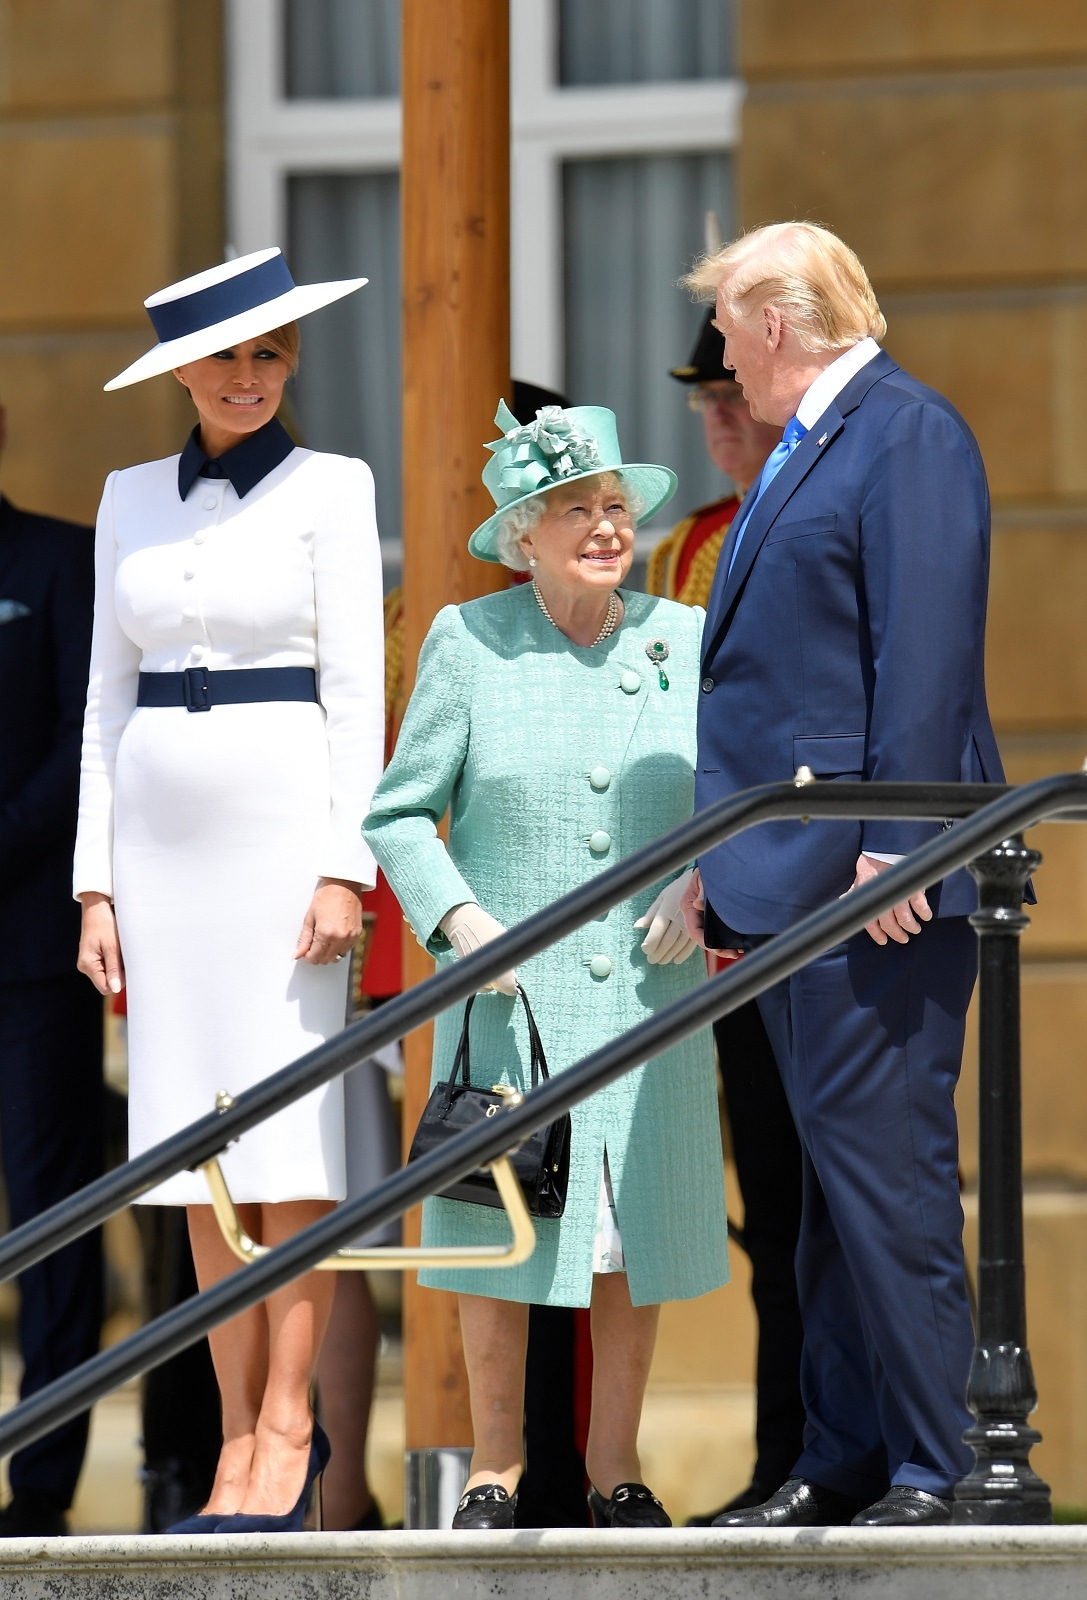 US President Donald Trump and First Lady Melania Trump meet with Britain's Queen Elizabeth at Buckingham Palace, in London, Britain, June 3, 2019. REUTERS/Toby Melville/Pool